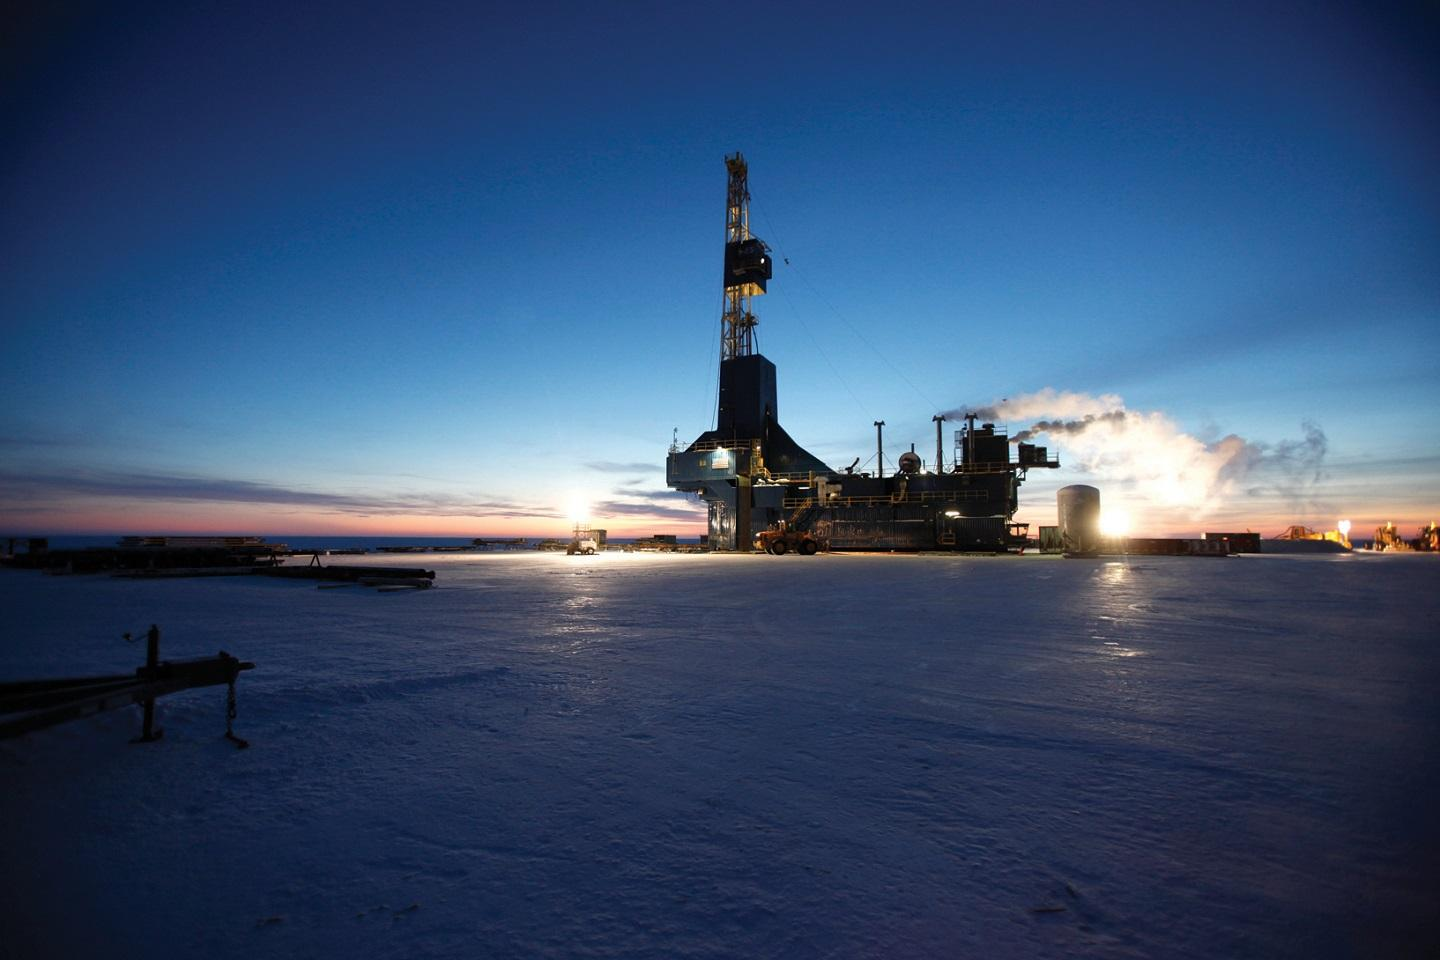 88 Energy expands Alaskan oil portfolio